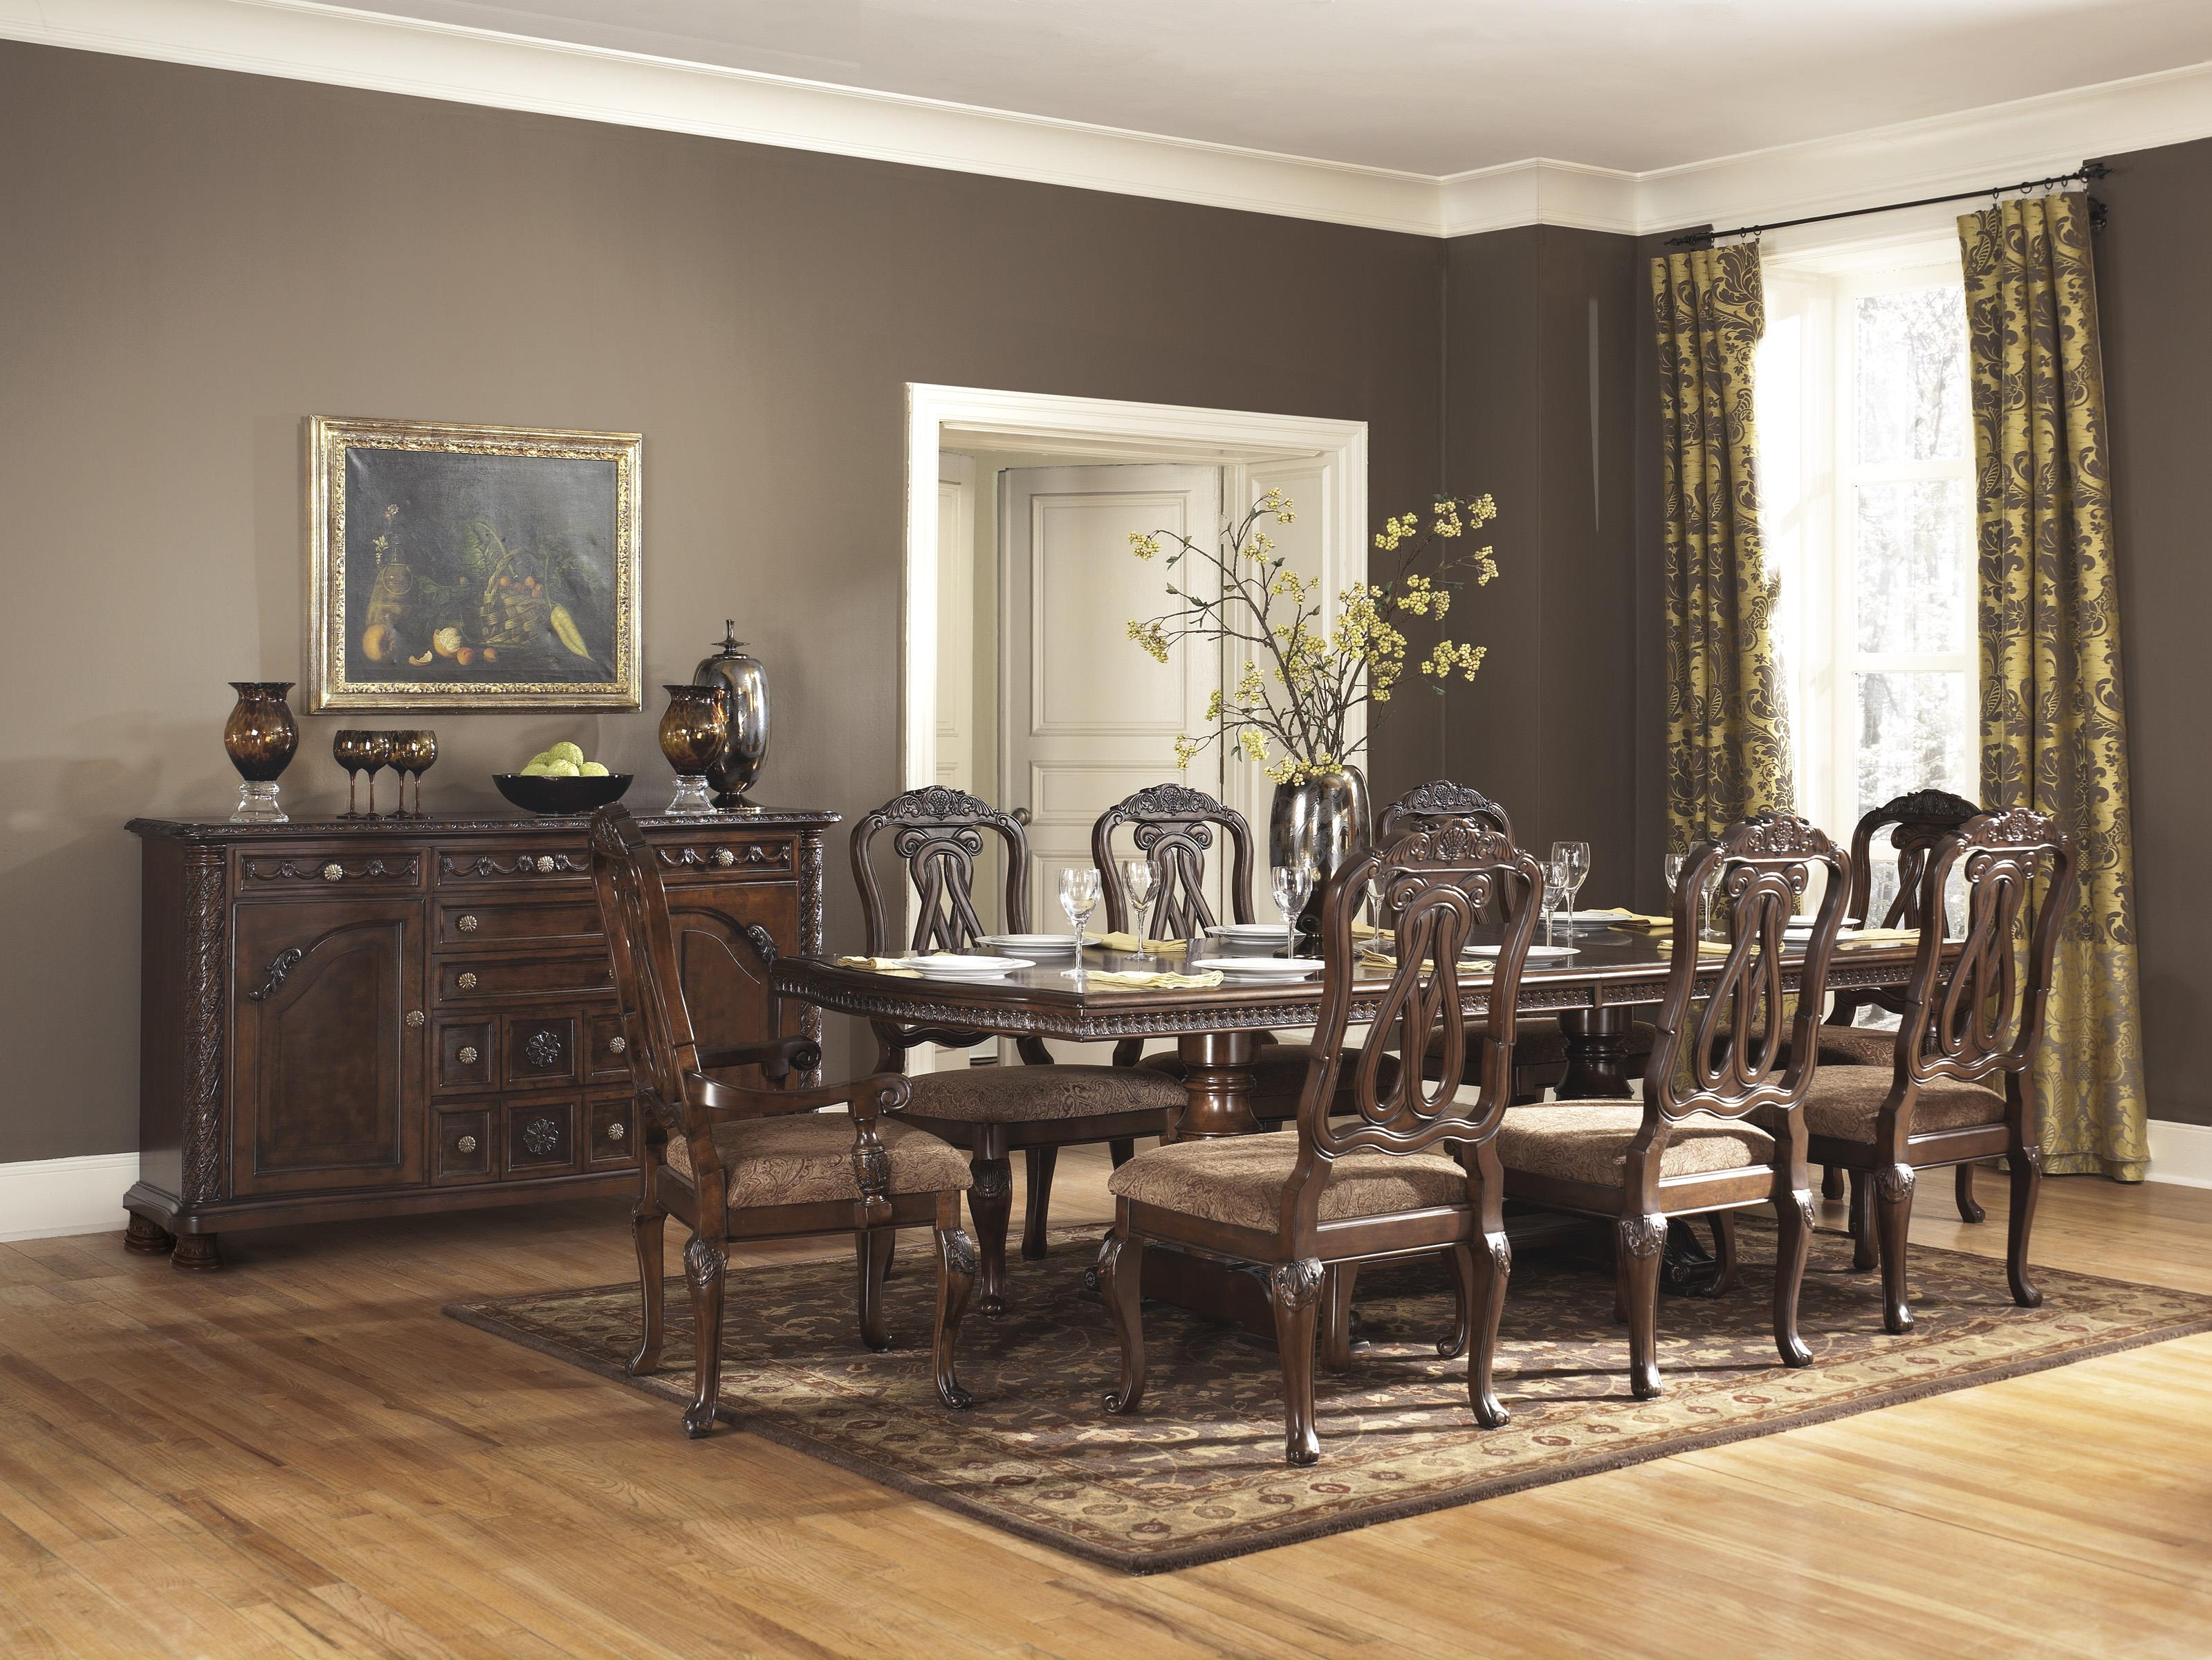 formal dining room group item number d553 dining room group 11 - Dining Room Furniture Denver Co